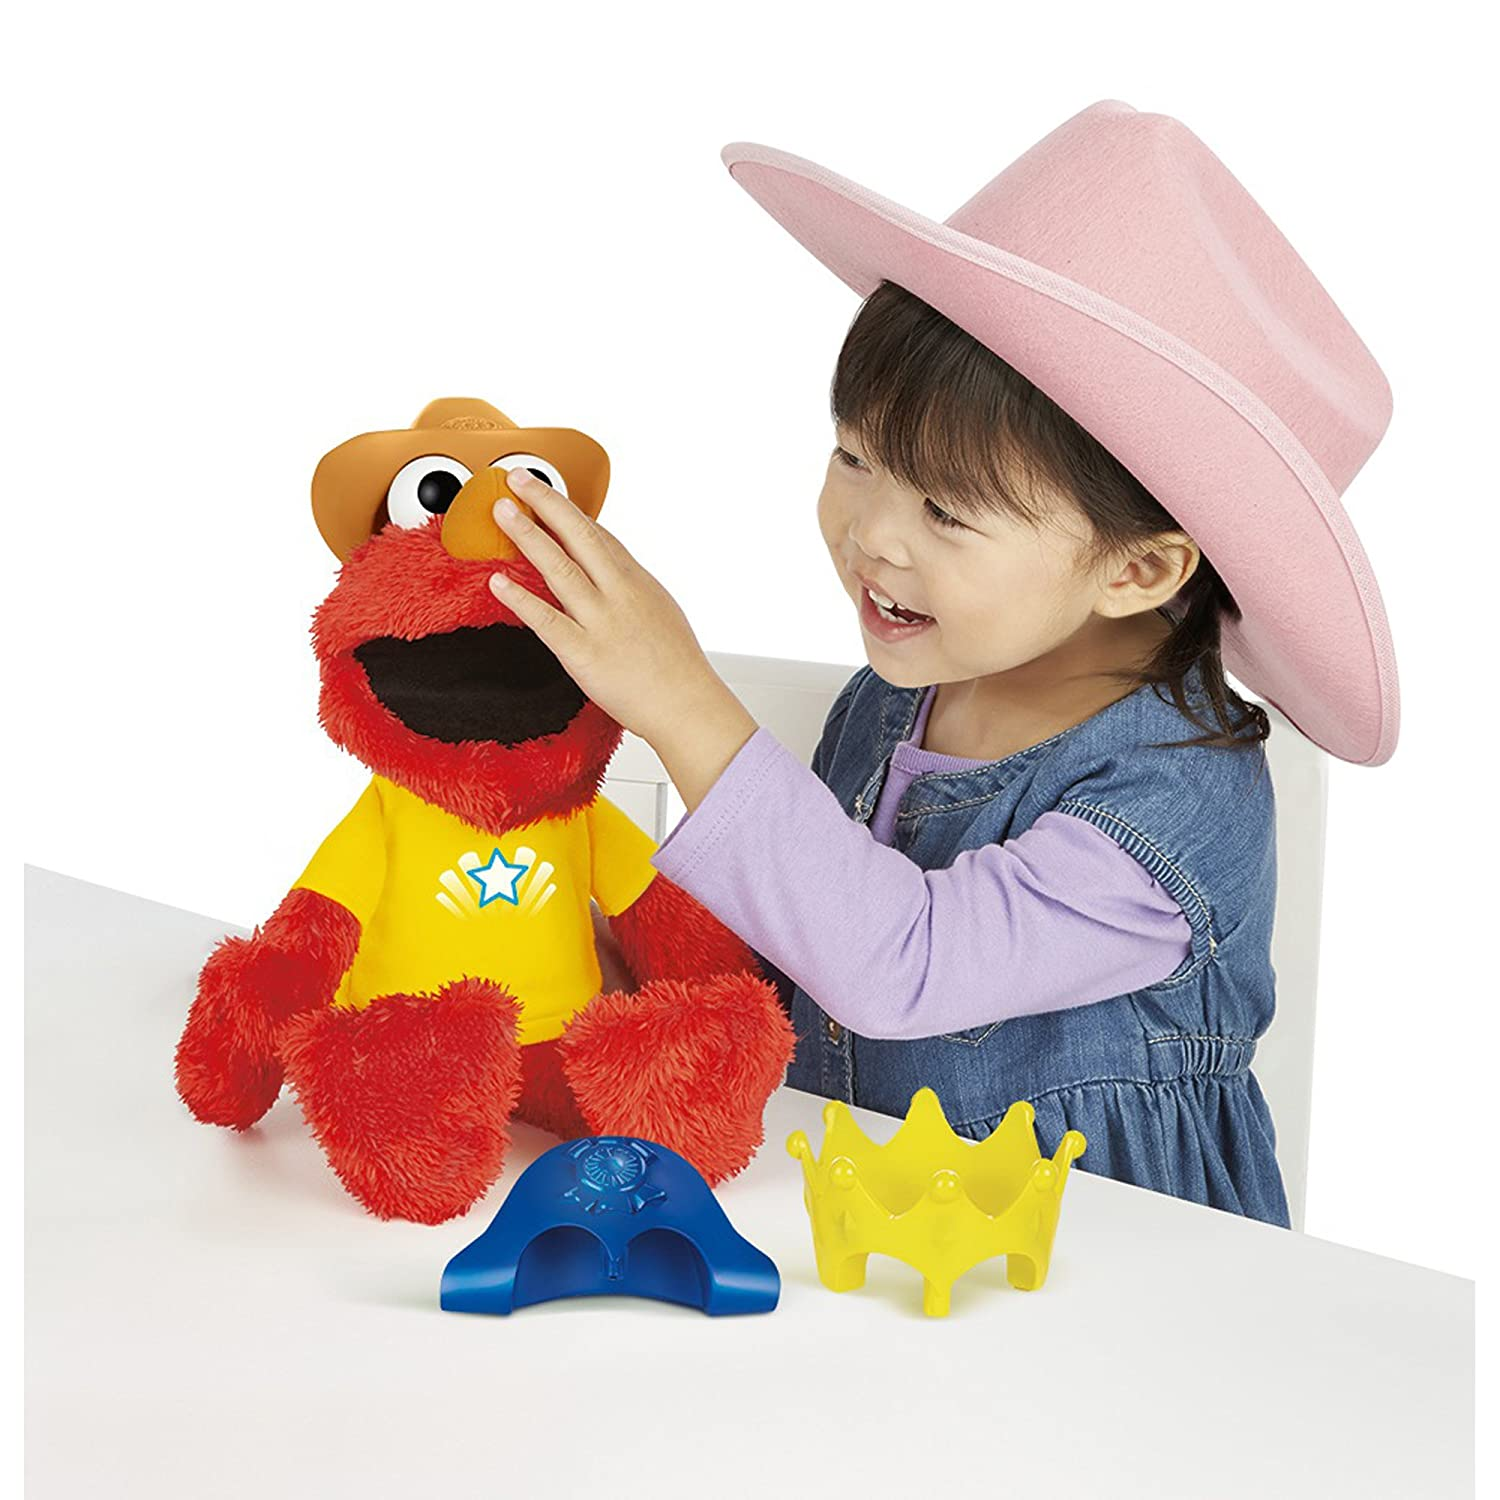 Sesame Street Let s Imagine Elmo Toy Amazon Toys & Games